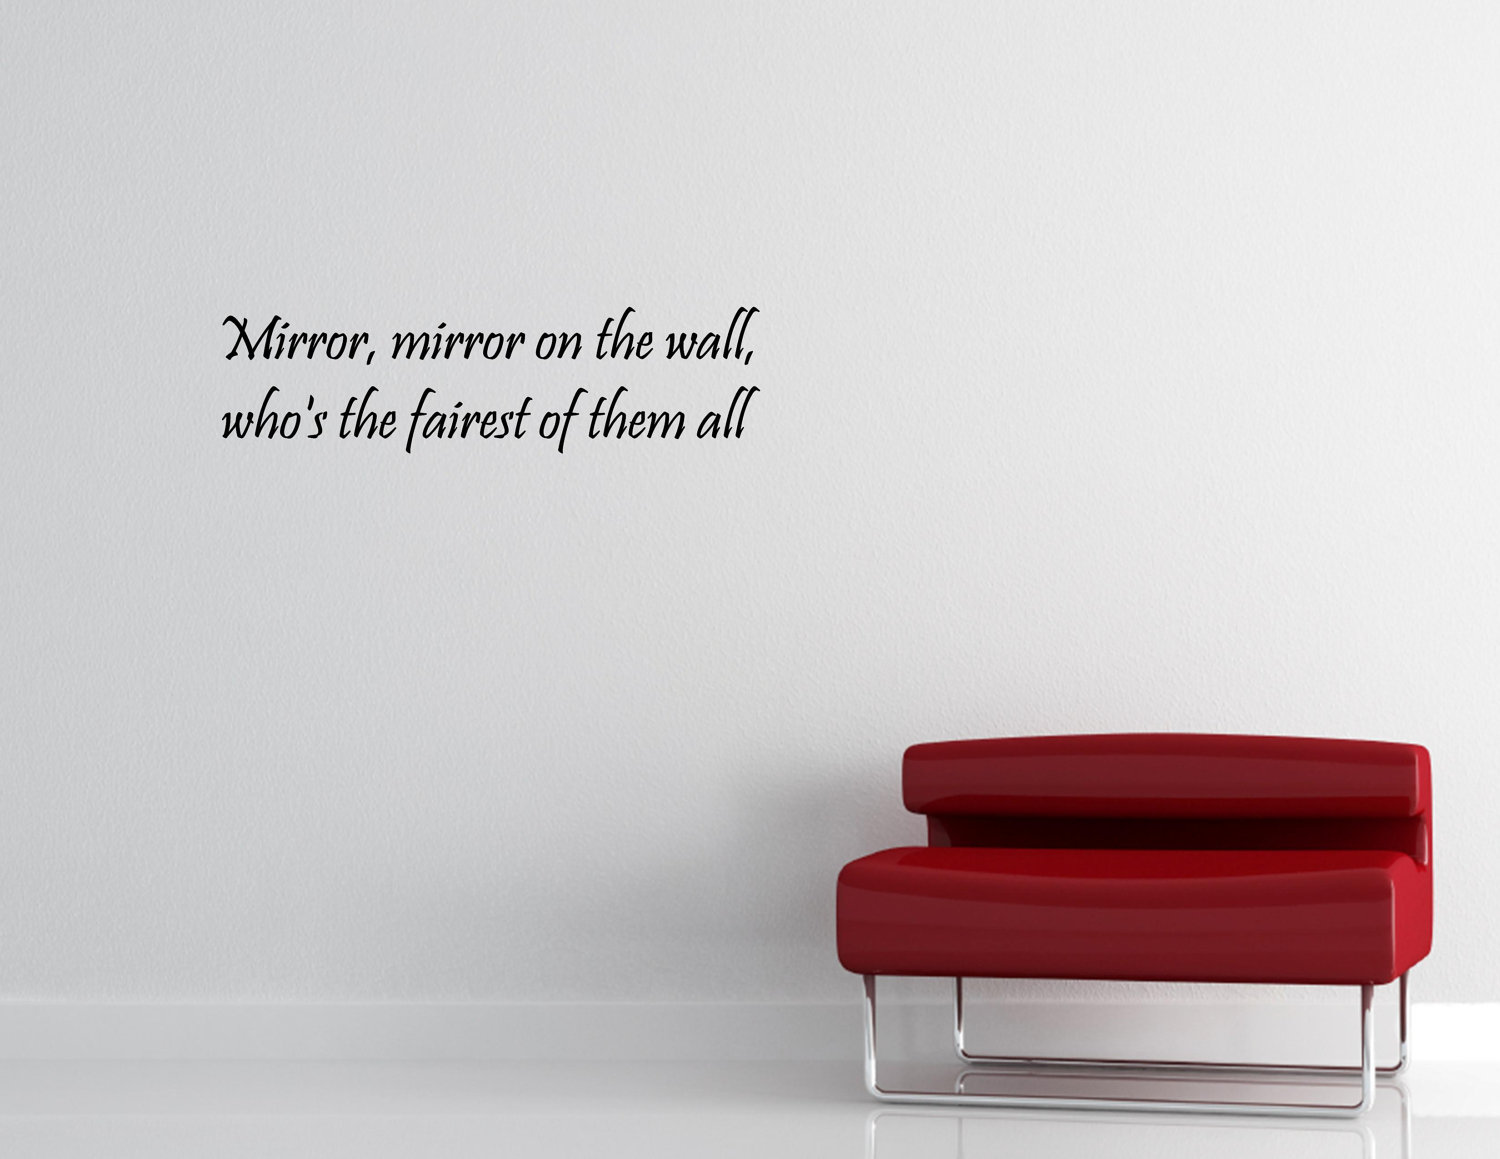 Quotes About Mirror Mirror On The Wall 22 Quotes